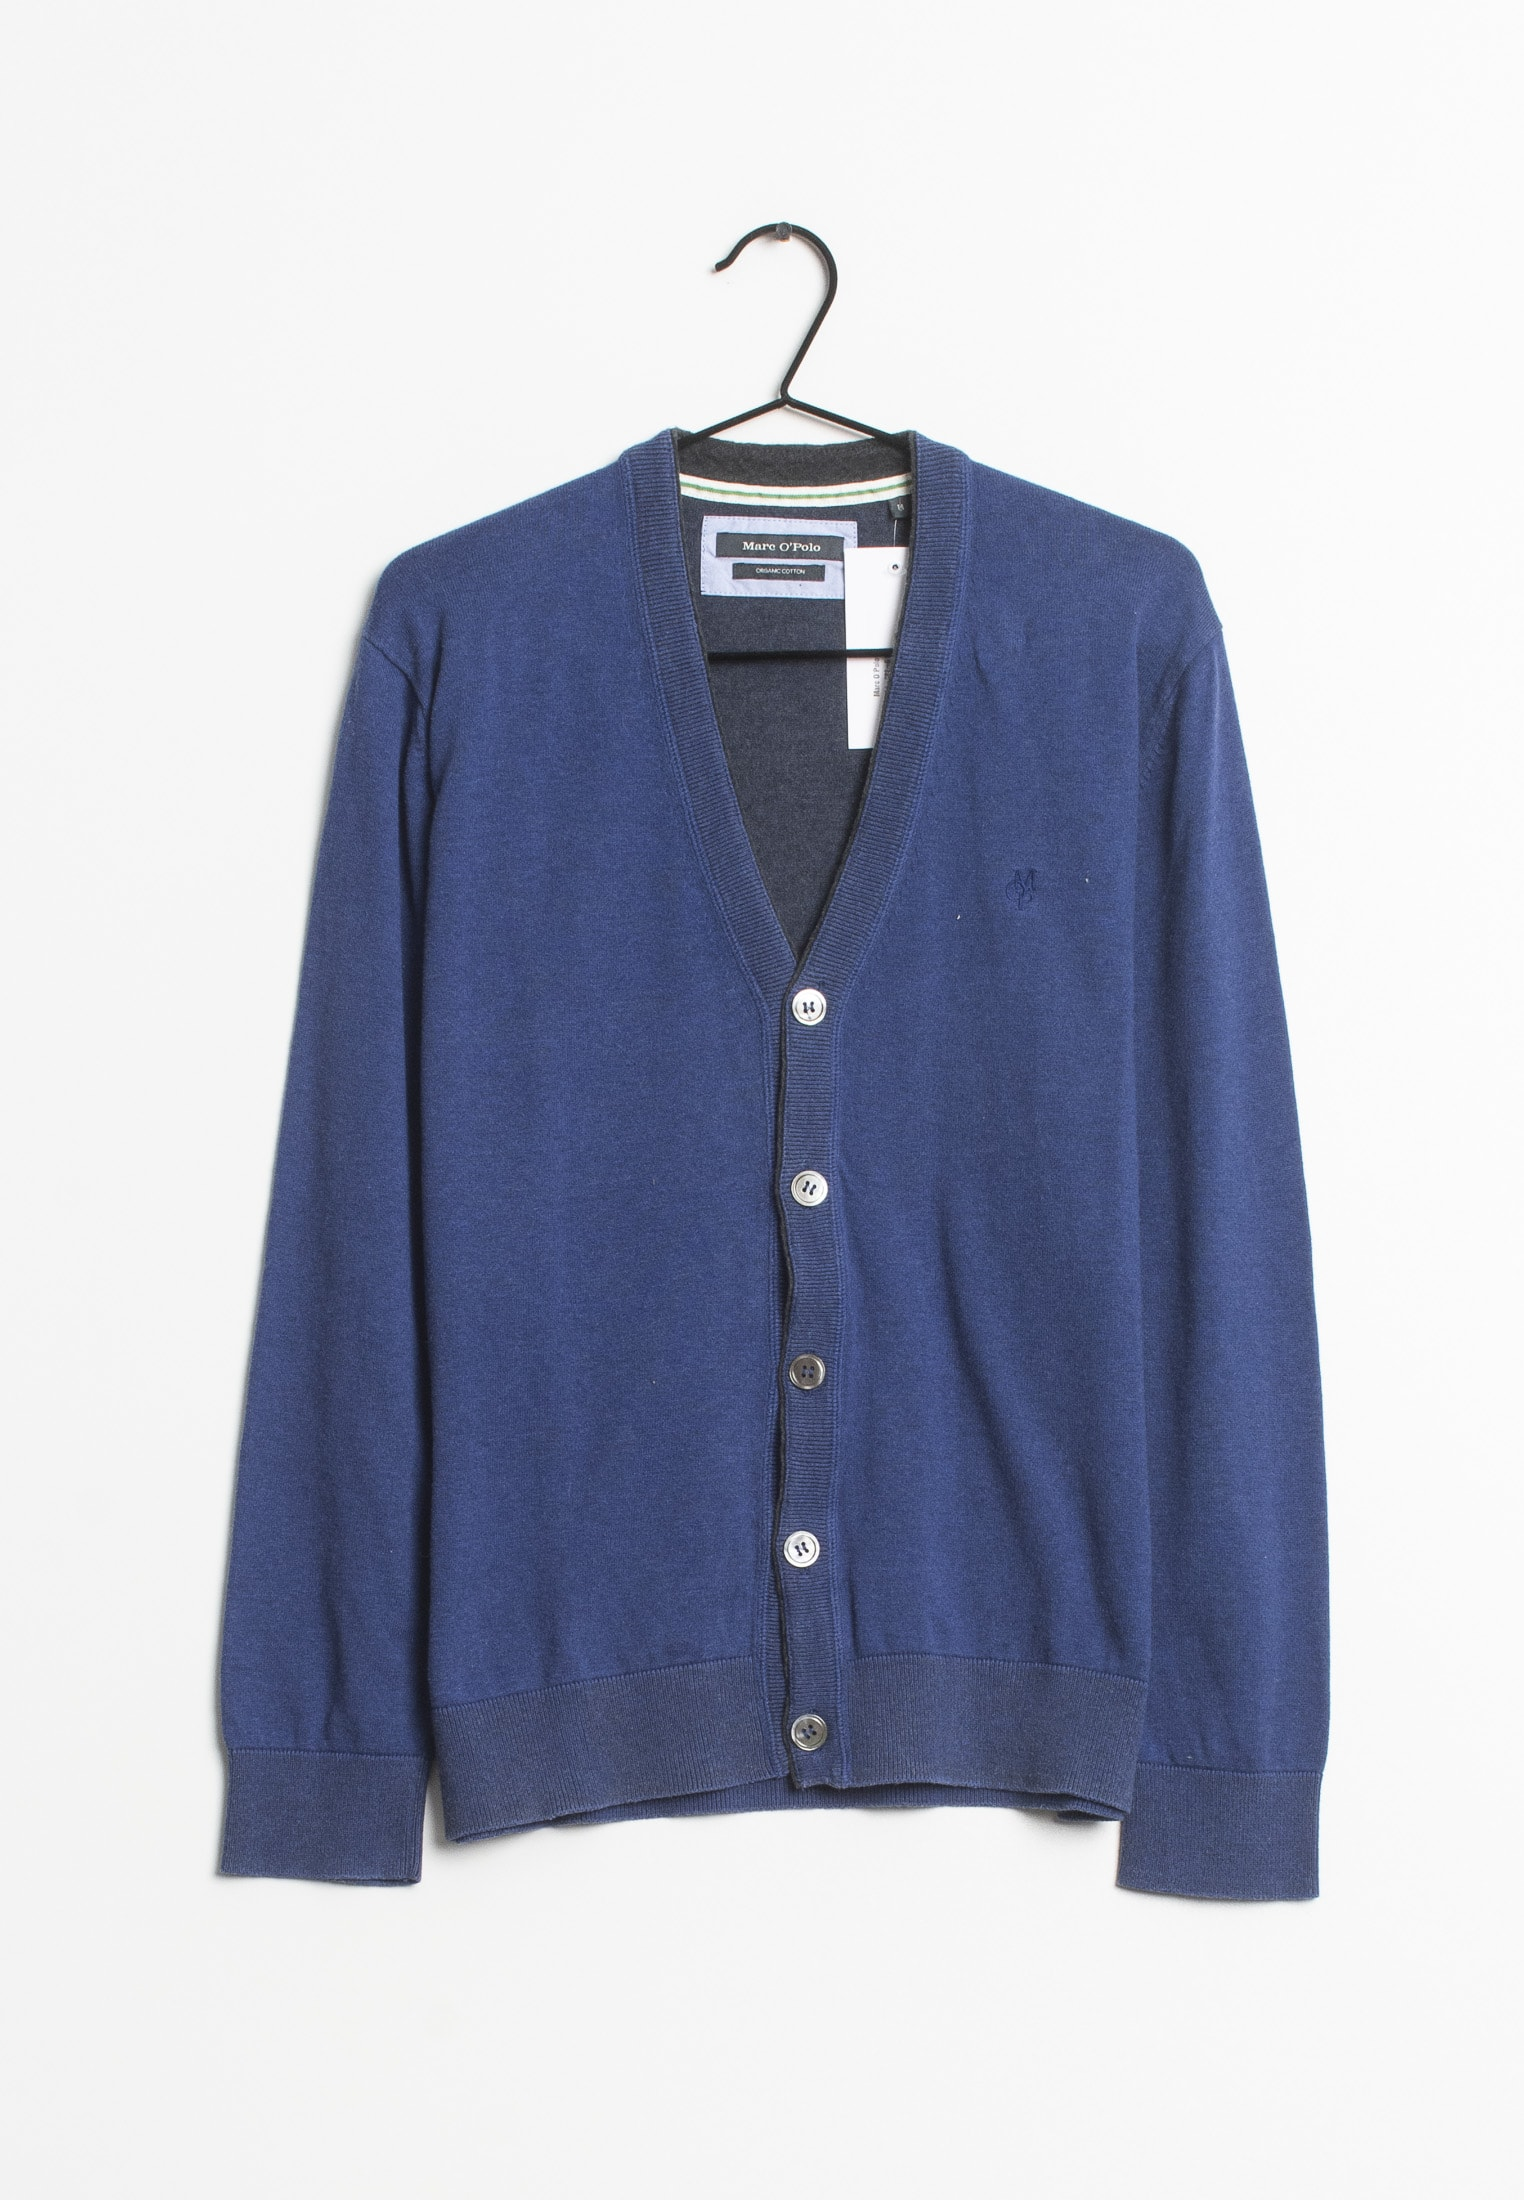 Marc O'Polo cardigan, blå, M